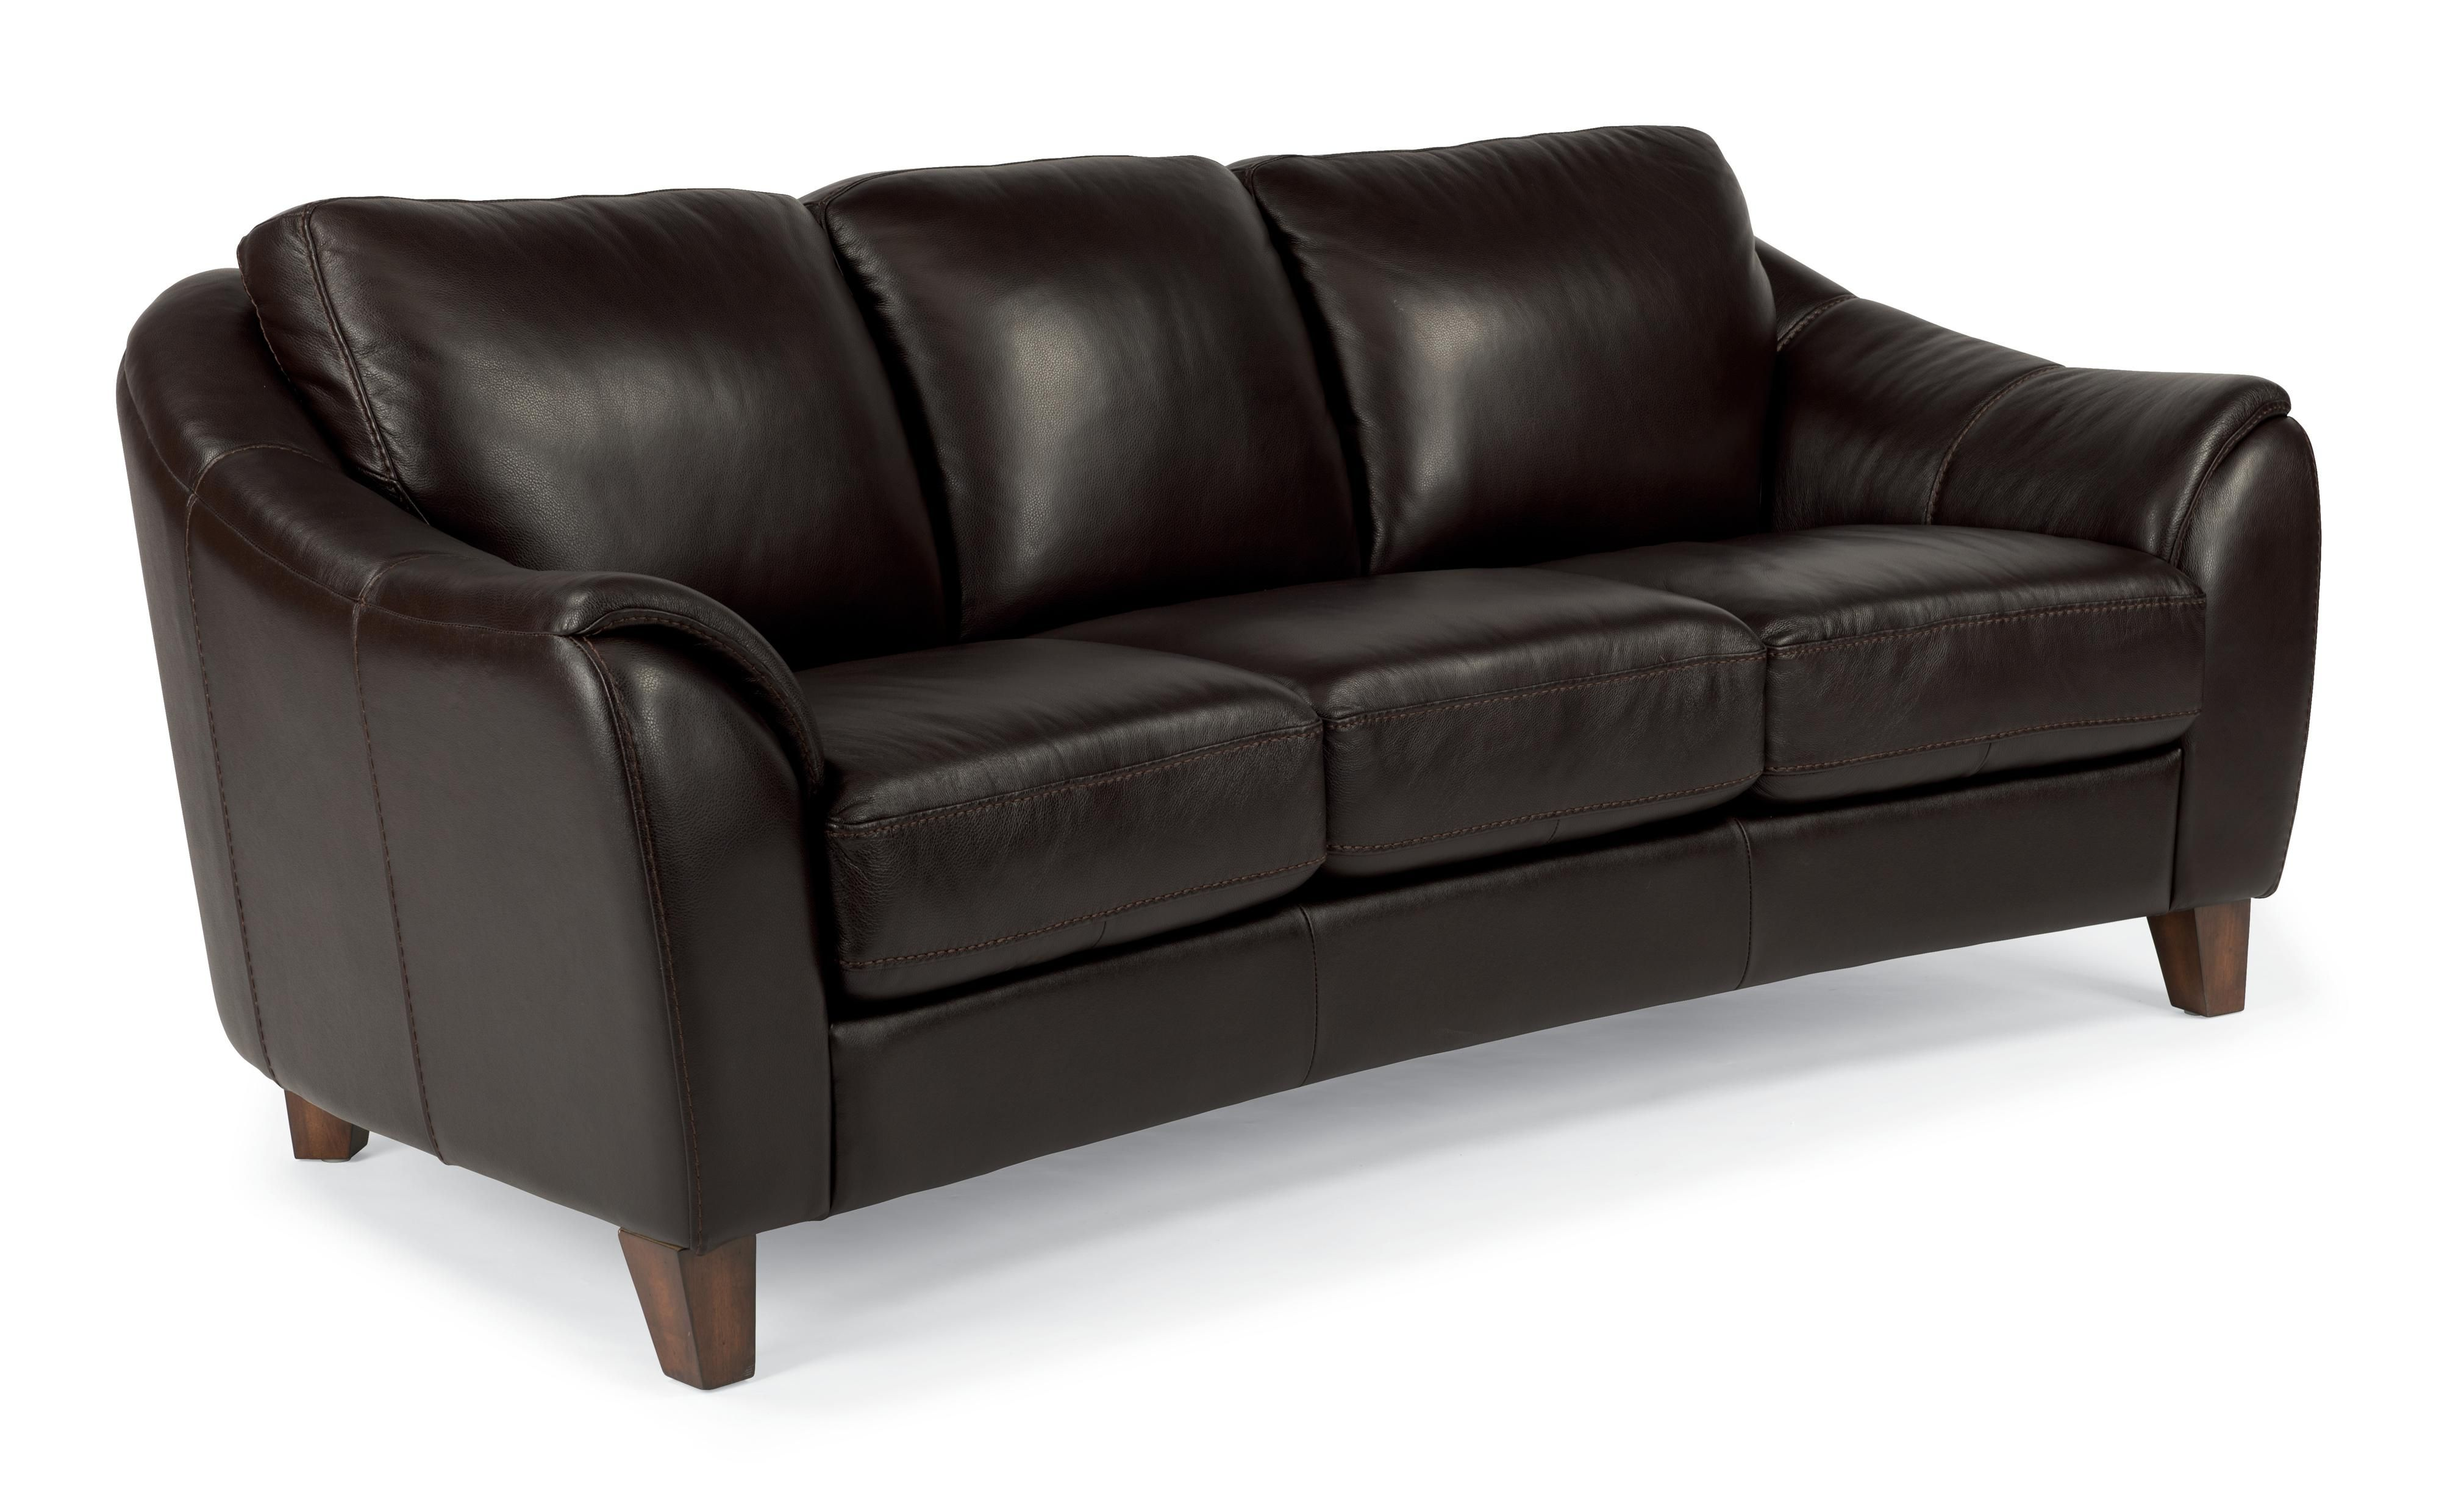 Flexsteel Latitudes Lidia Contemporary Leather Sofa With Sloped And Tapered Arms John Contemporary Leather Sofa Leather Sofa Living Room Living Room Leather